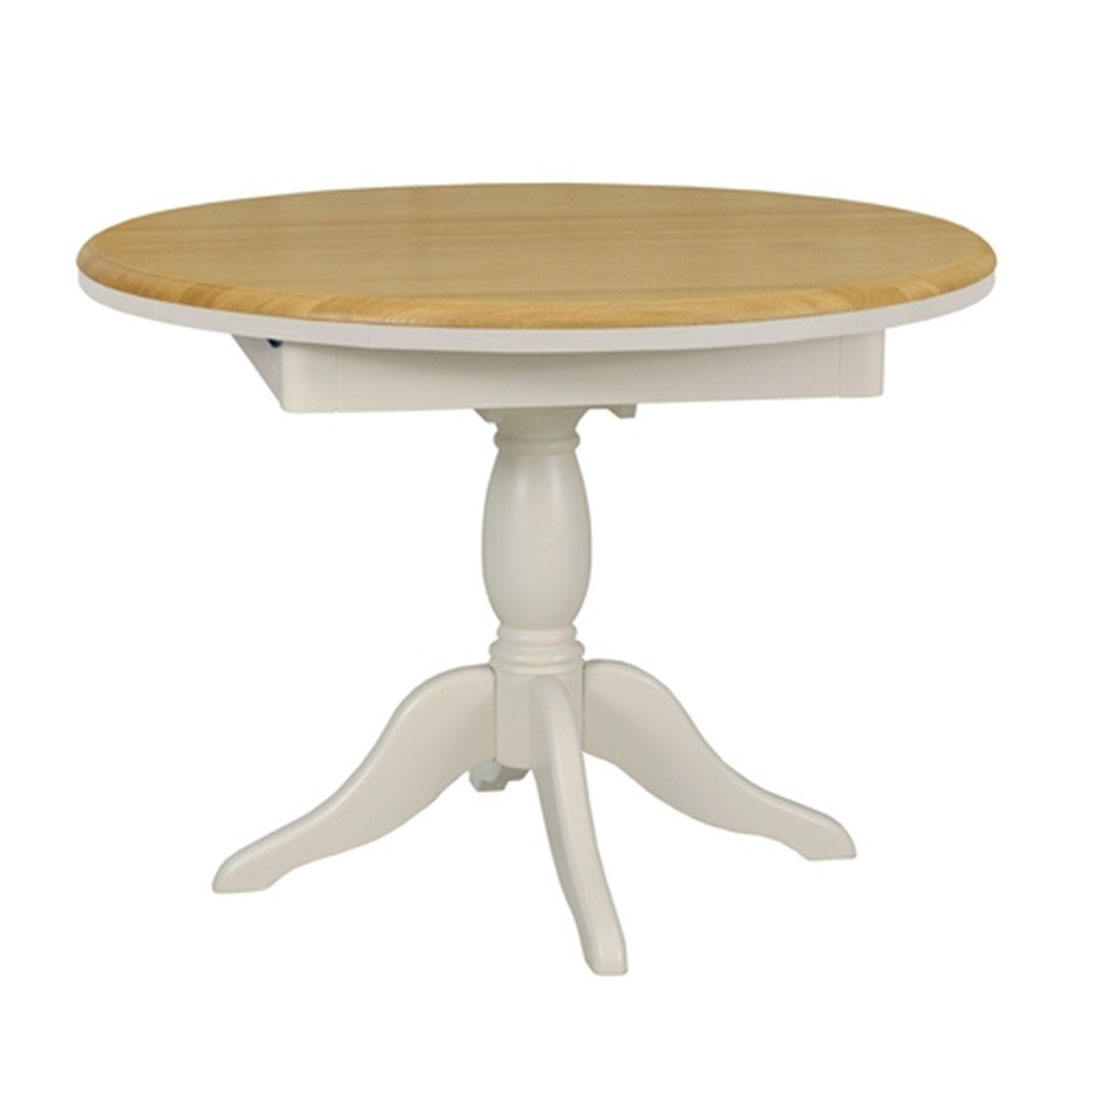 Stag Cromwell 106-145cm Extending Round Pedestal Dining Table